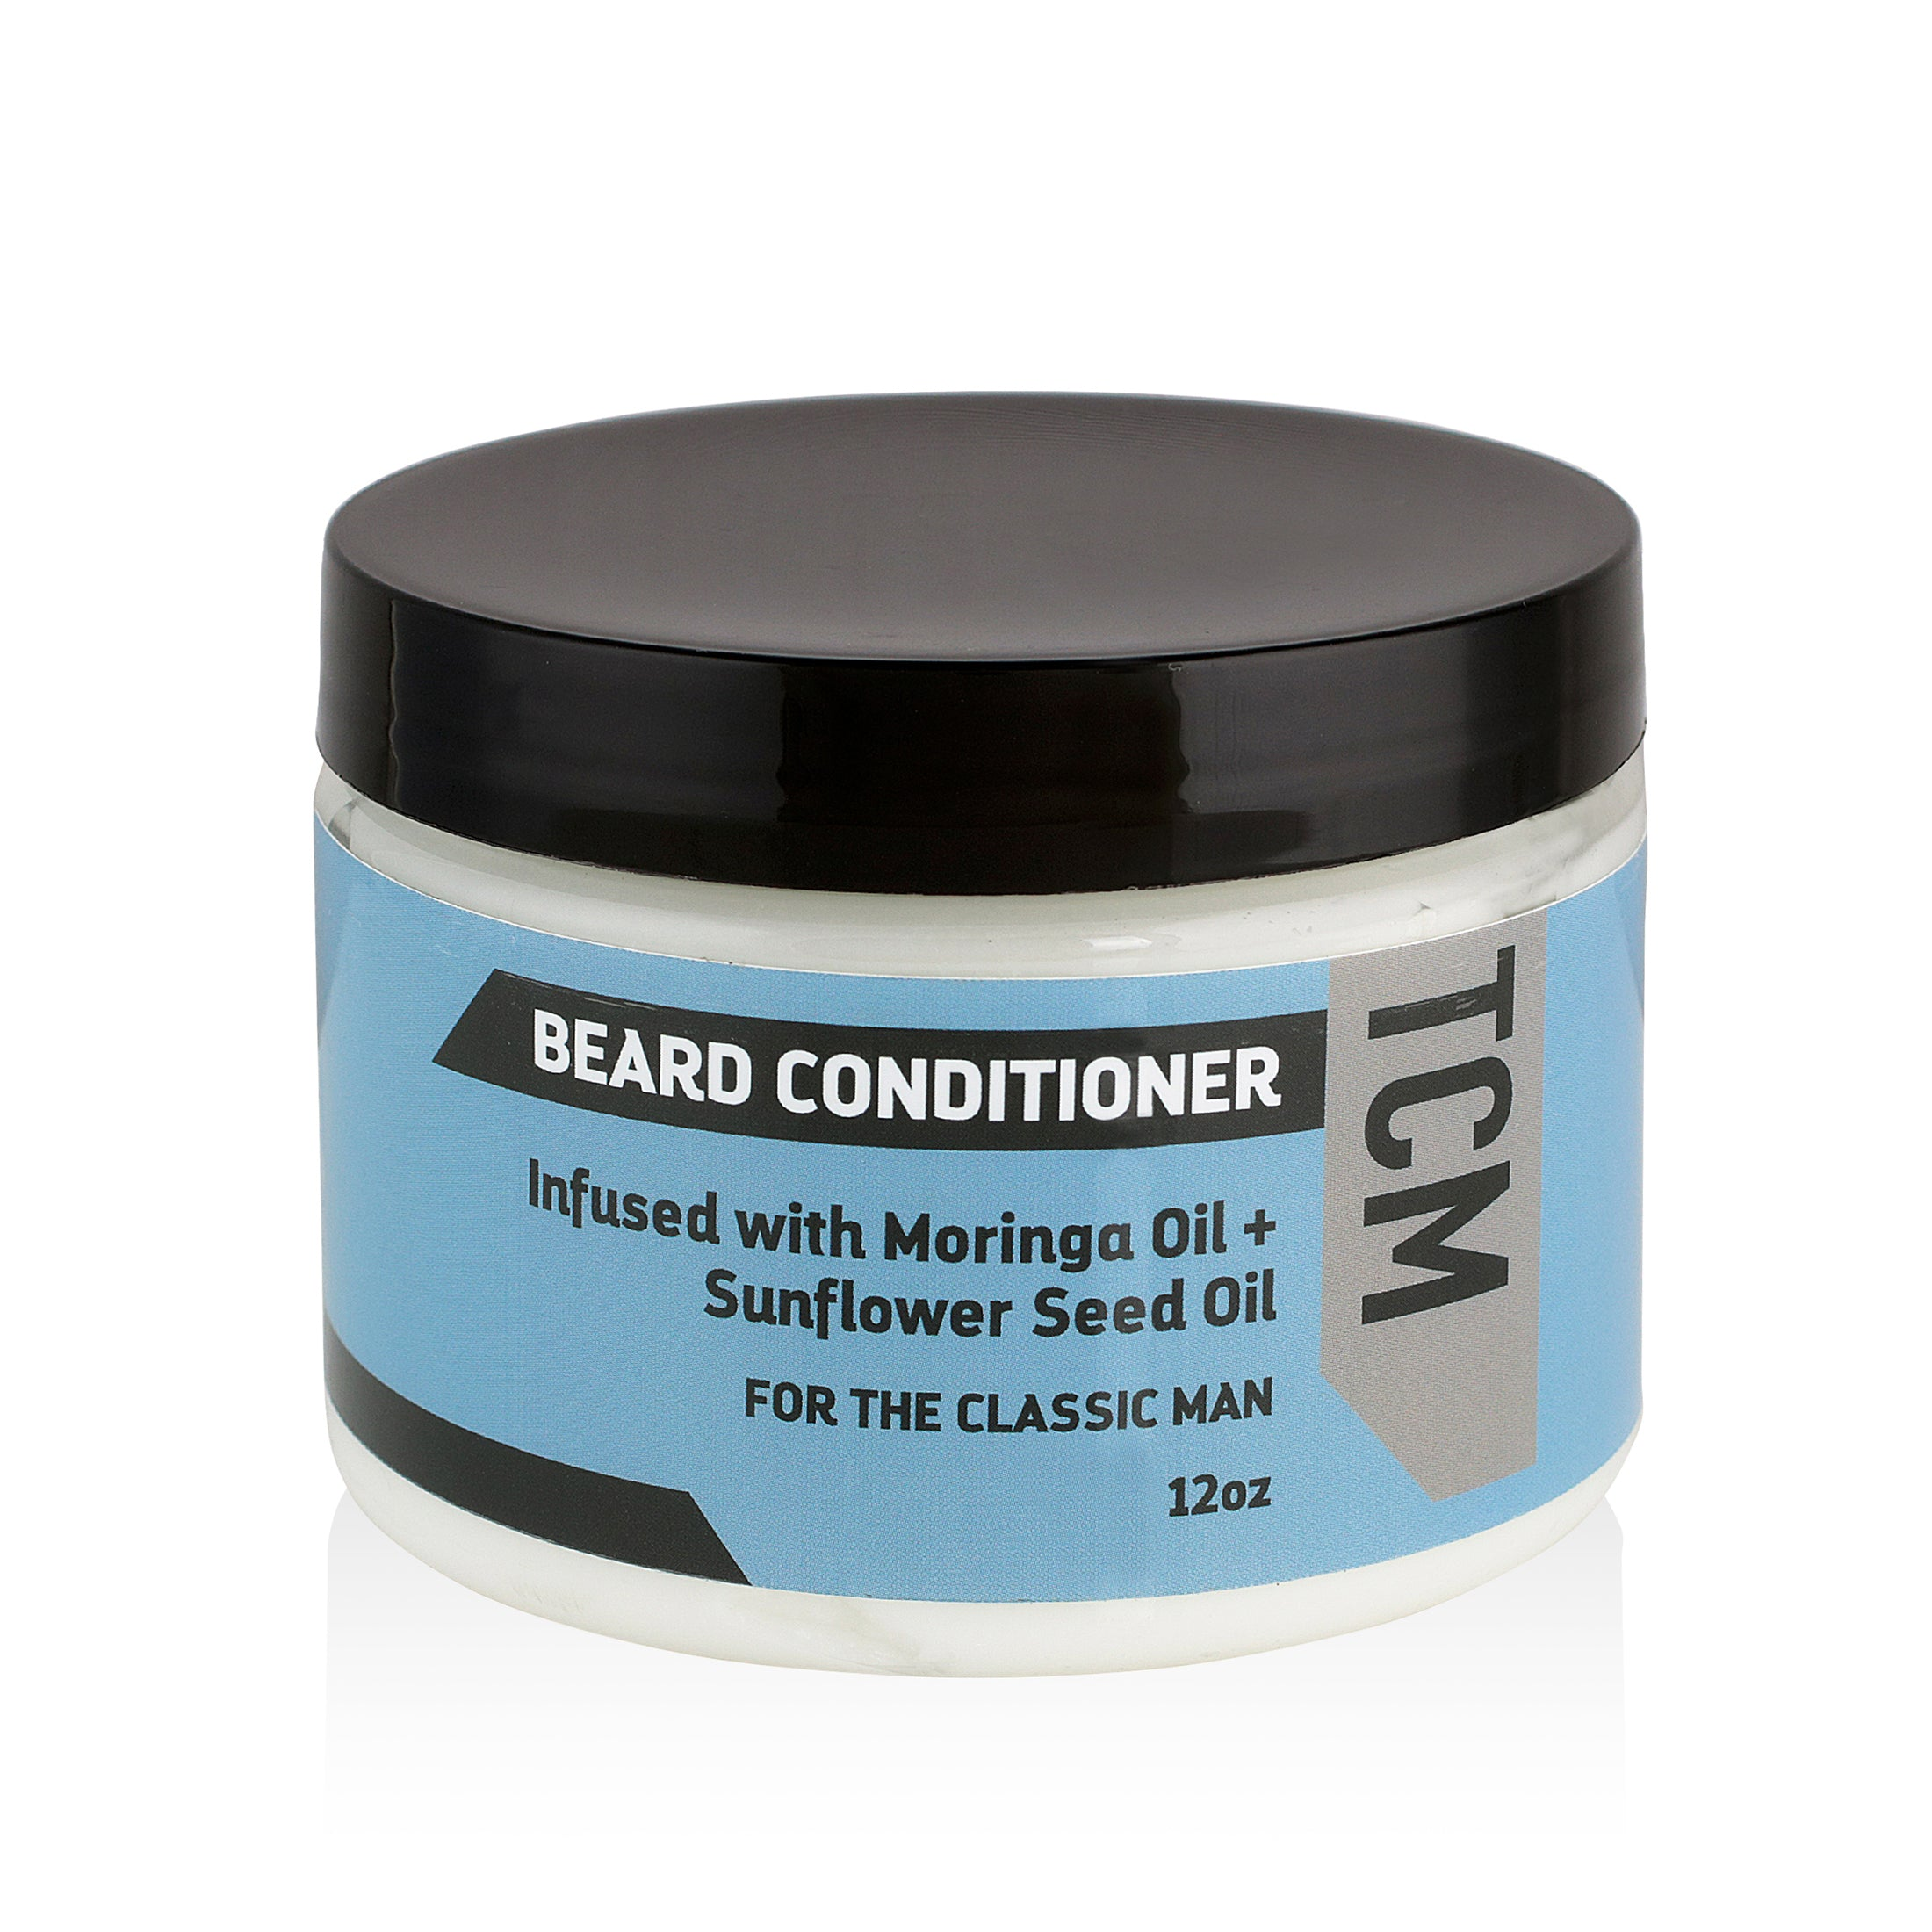 TCM Beard Conditioner 12oz - 2 Pack